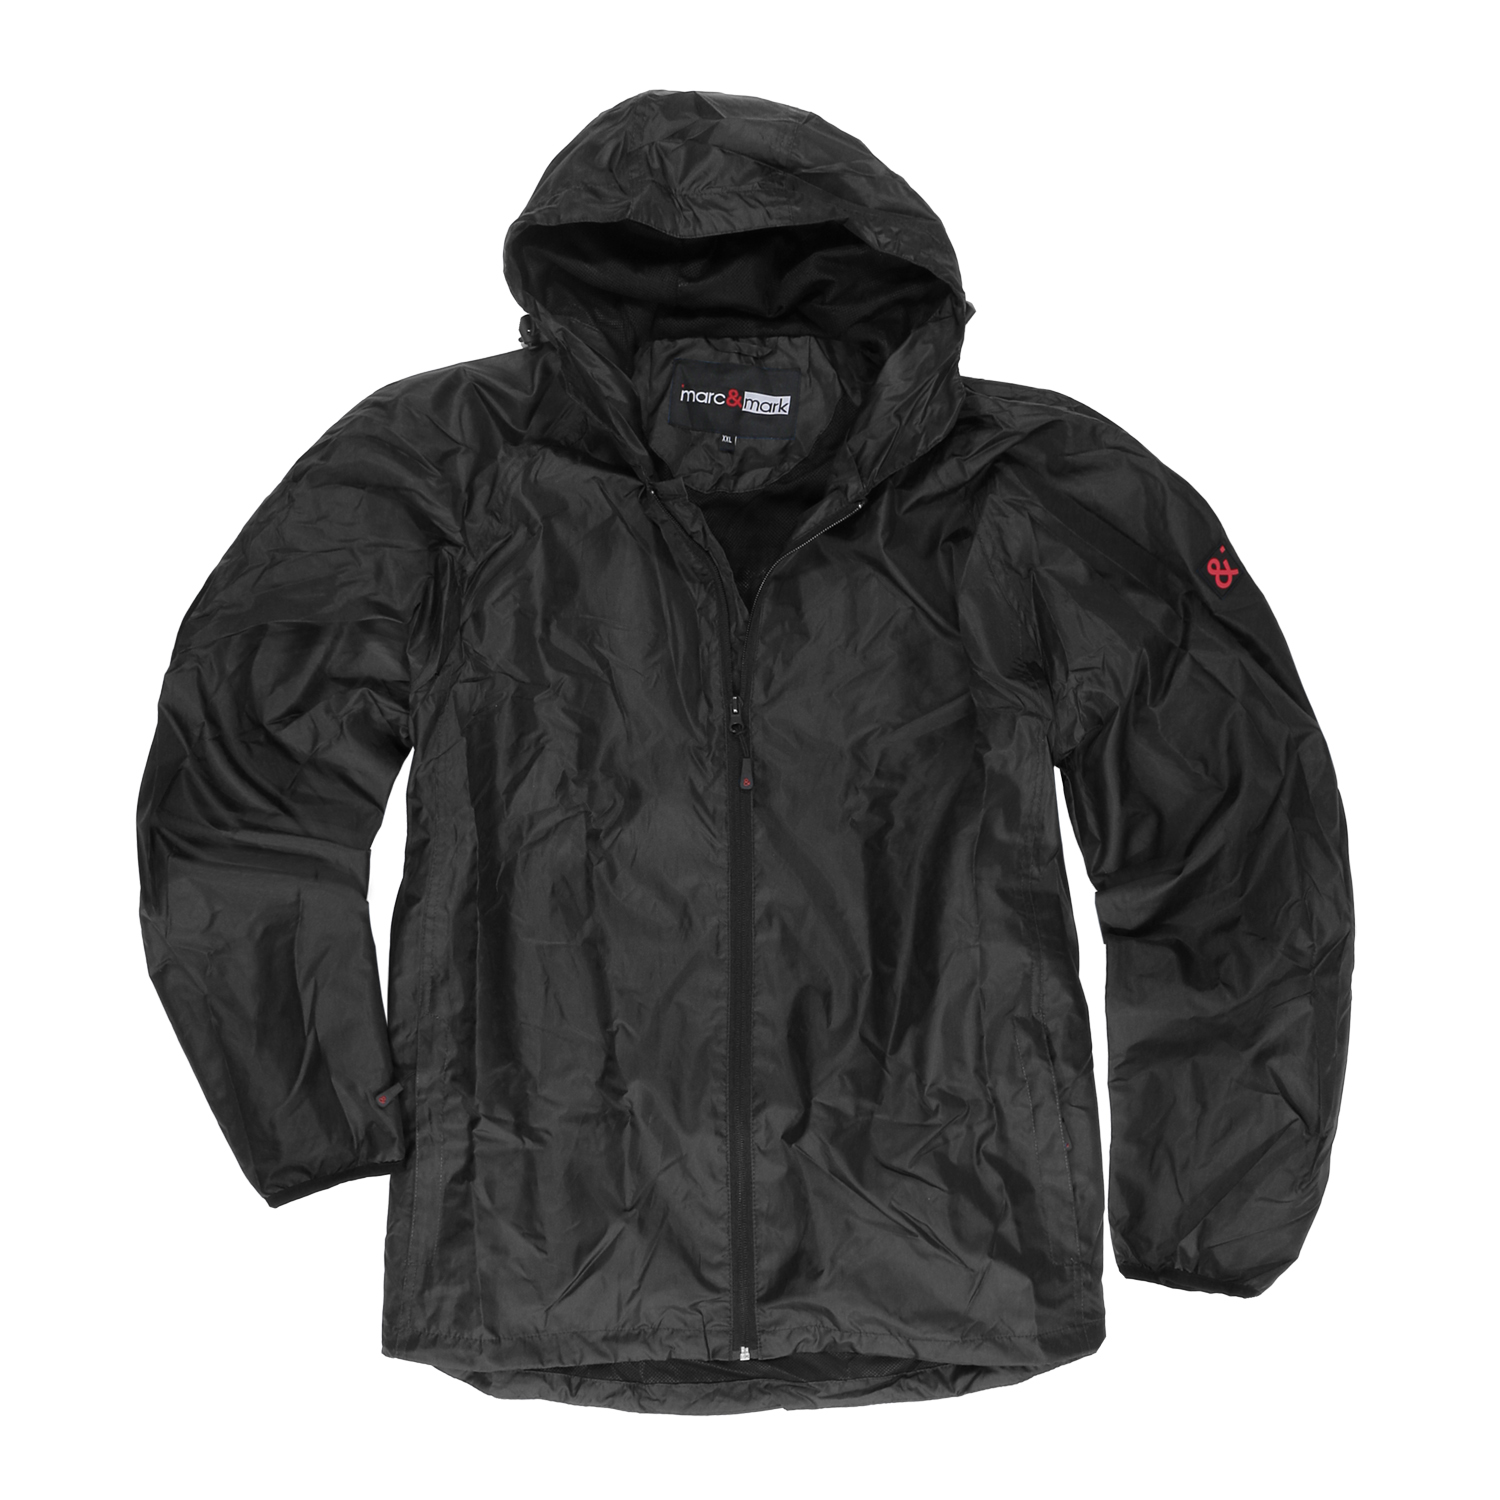 Detail Image to Black wind and rain jacket from marc&mark in plus sizes up to 12XL